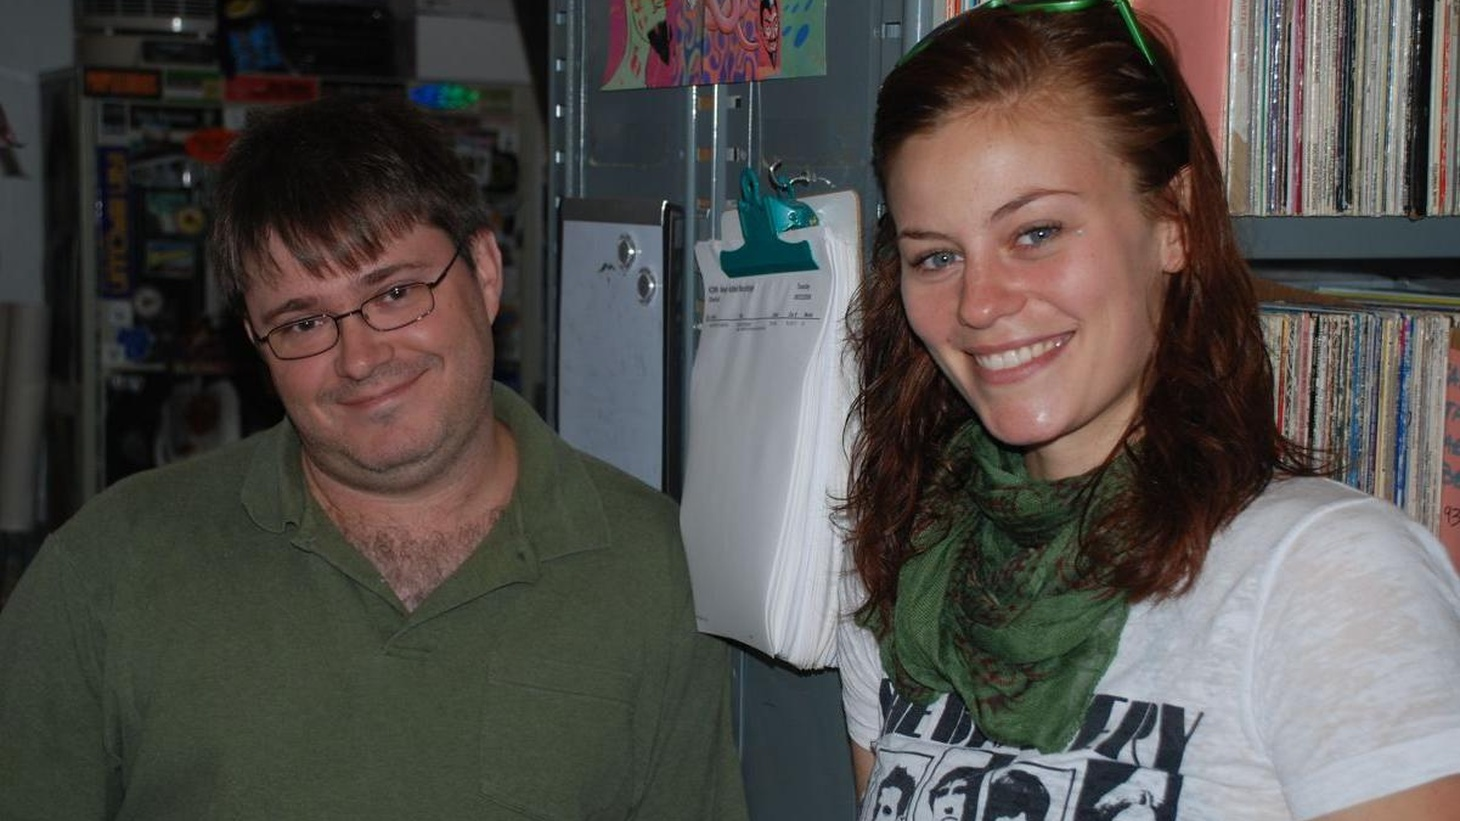 """Actress Cassidy Freeman plays a villain on the TV series """"Smallville,"""" but her guest DJ set is dedicated to songs about family and friendship, from a body rockin' electro track to a gentle acoustic lullaby about love and desire.  Cassidy's character Tess Mercer is the manipulative ruler of the LuthorCorp, in the CW hit drama and will be featured in a special, 2-hour extended episode written by DC Comics favorite Geoff Johns later this month. She is also a former KCRW volunteer!"""